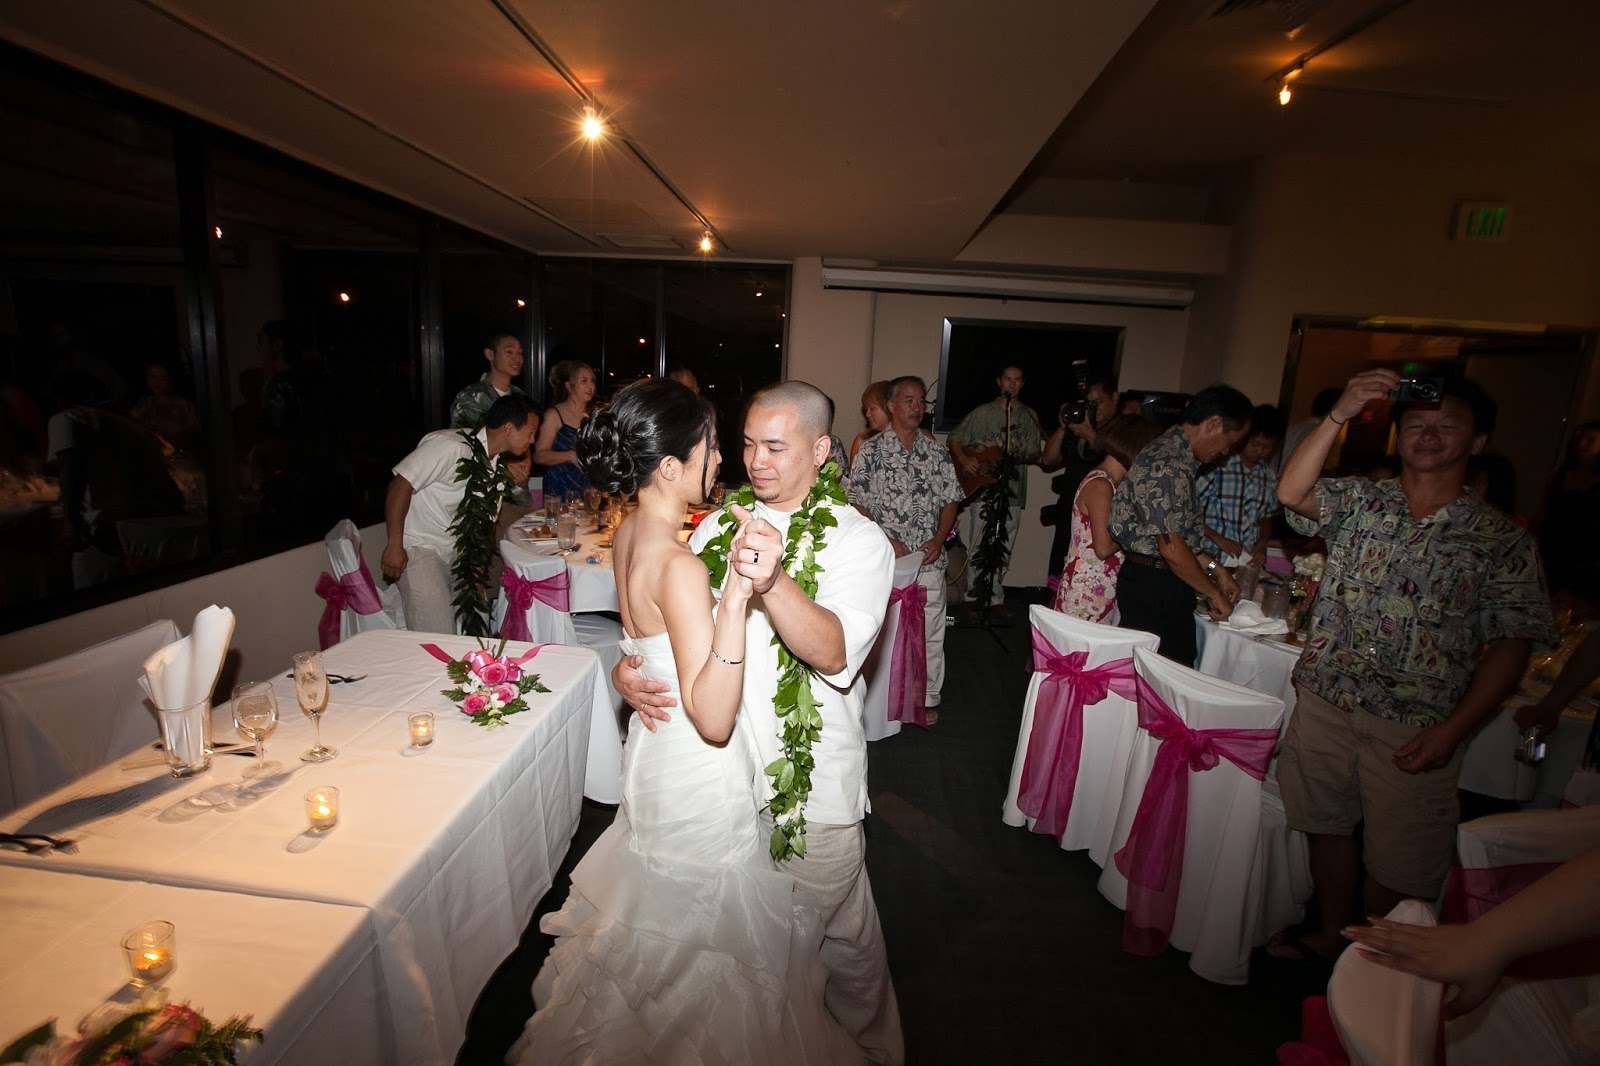 Chair Cover Express Hawaii Lazy Boy Lift Chairs Reviews Let 39s Do This Event And Wedding Planning Secret Island